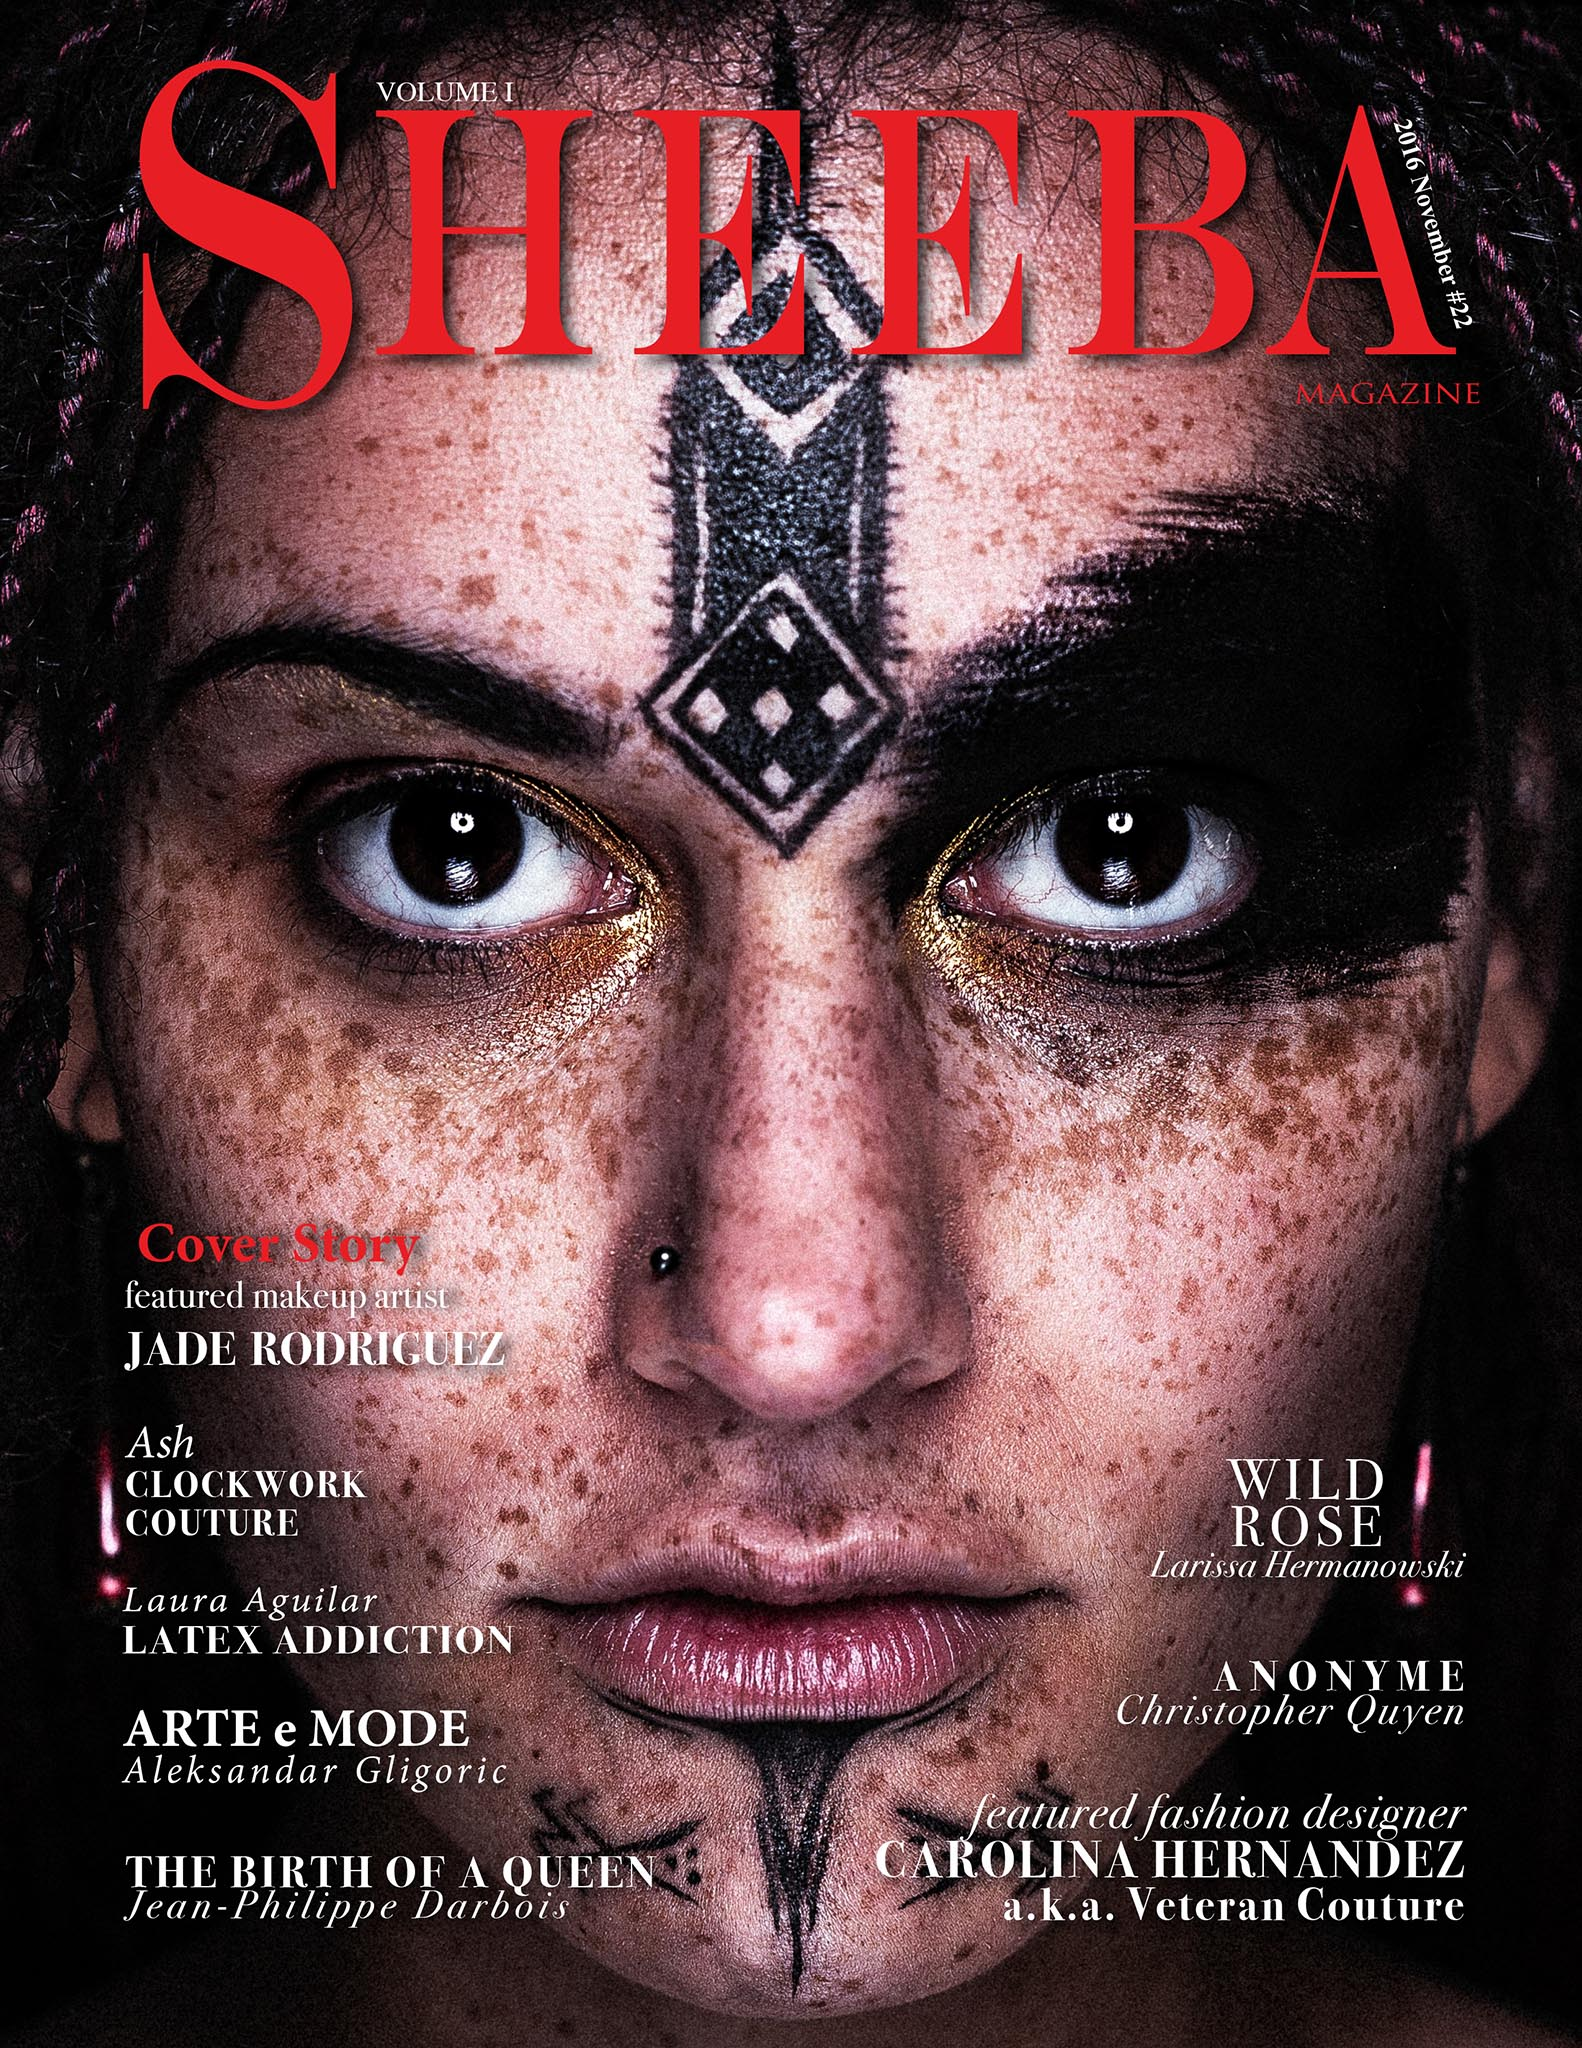 Couverture Nov 2016 SHEEBA